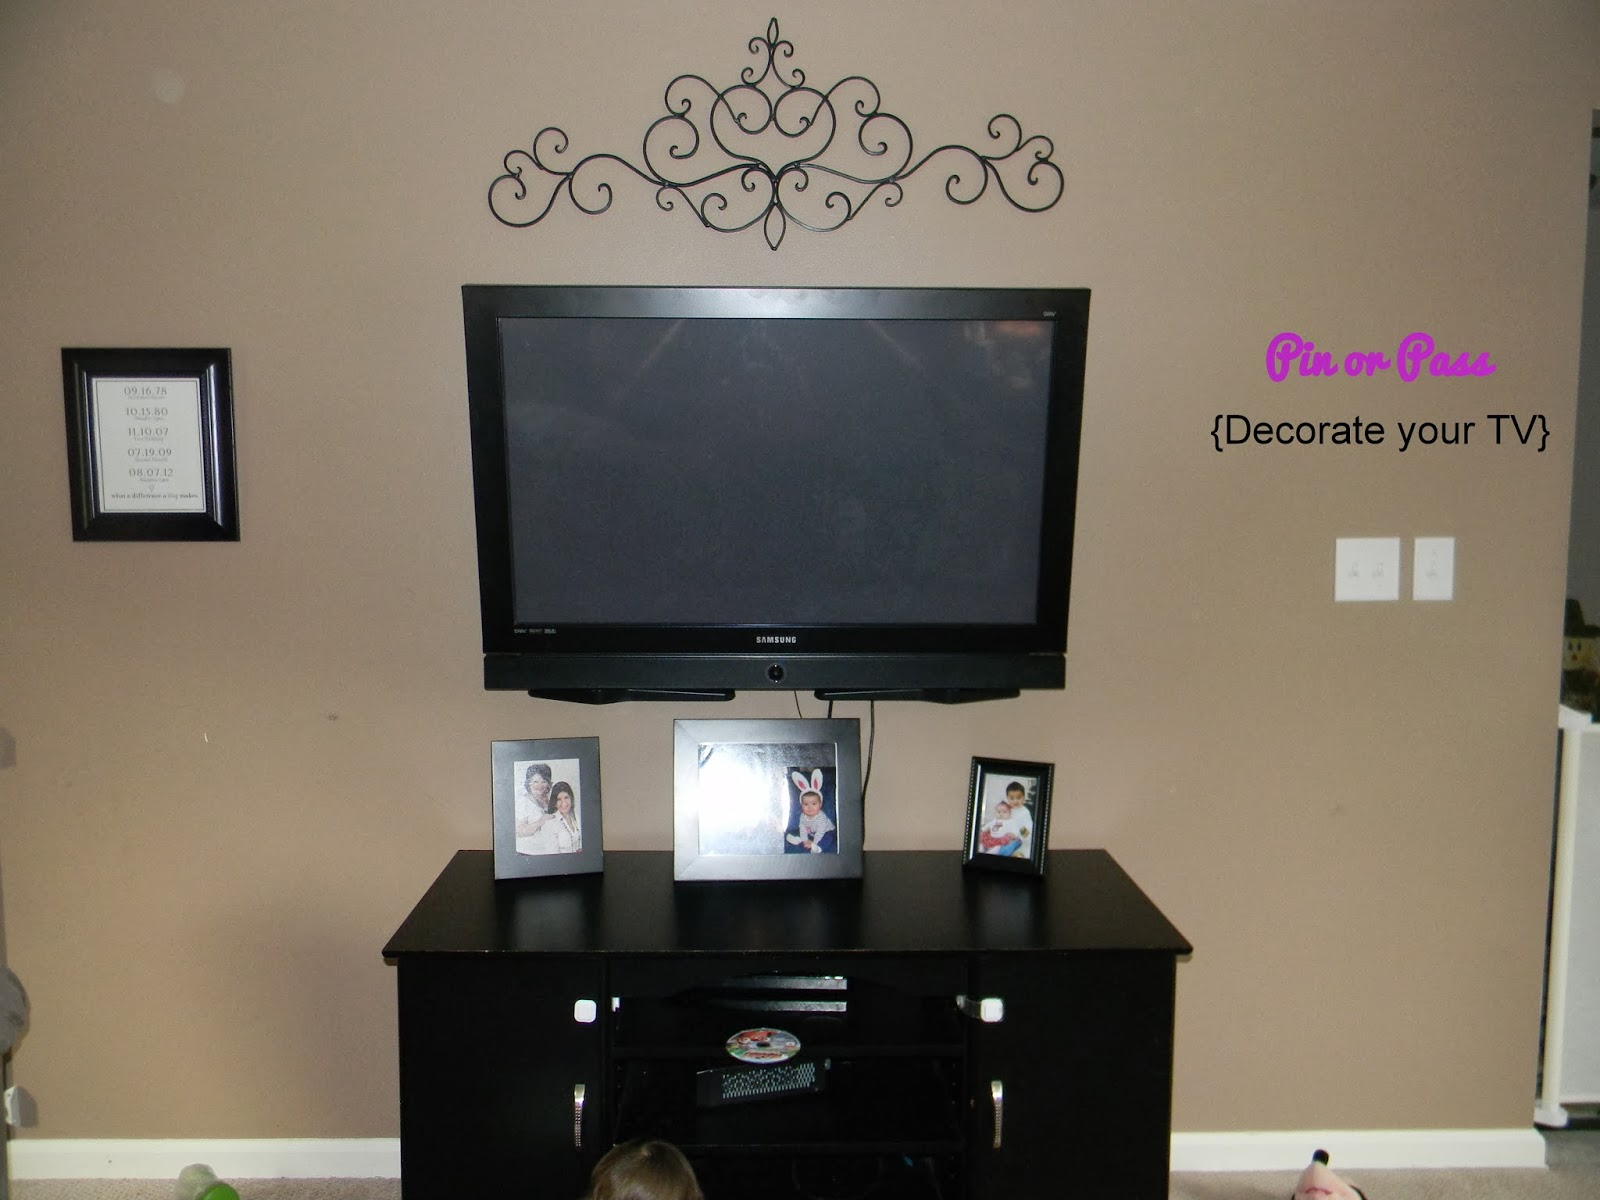 Wall Decoration Above Tv : Pin or pass decorate your tv